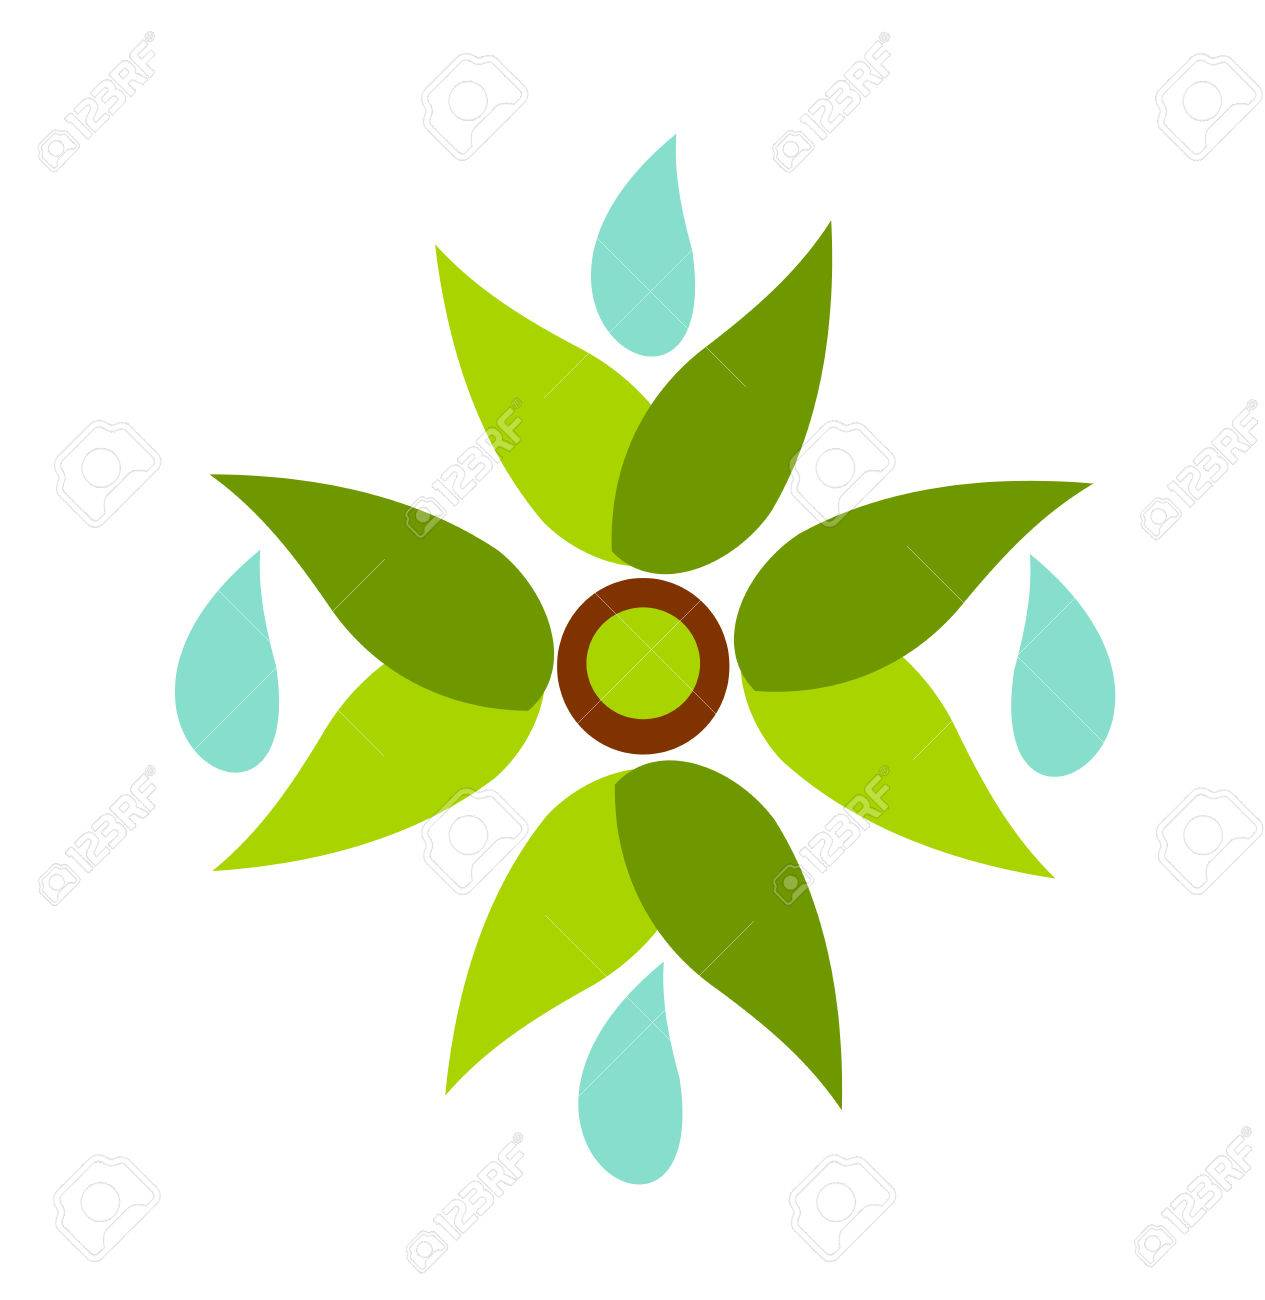 Symbolic fan made of green leaves with waterdrops illustration Stock Vector - 8173704